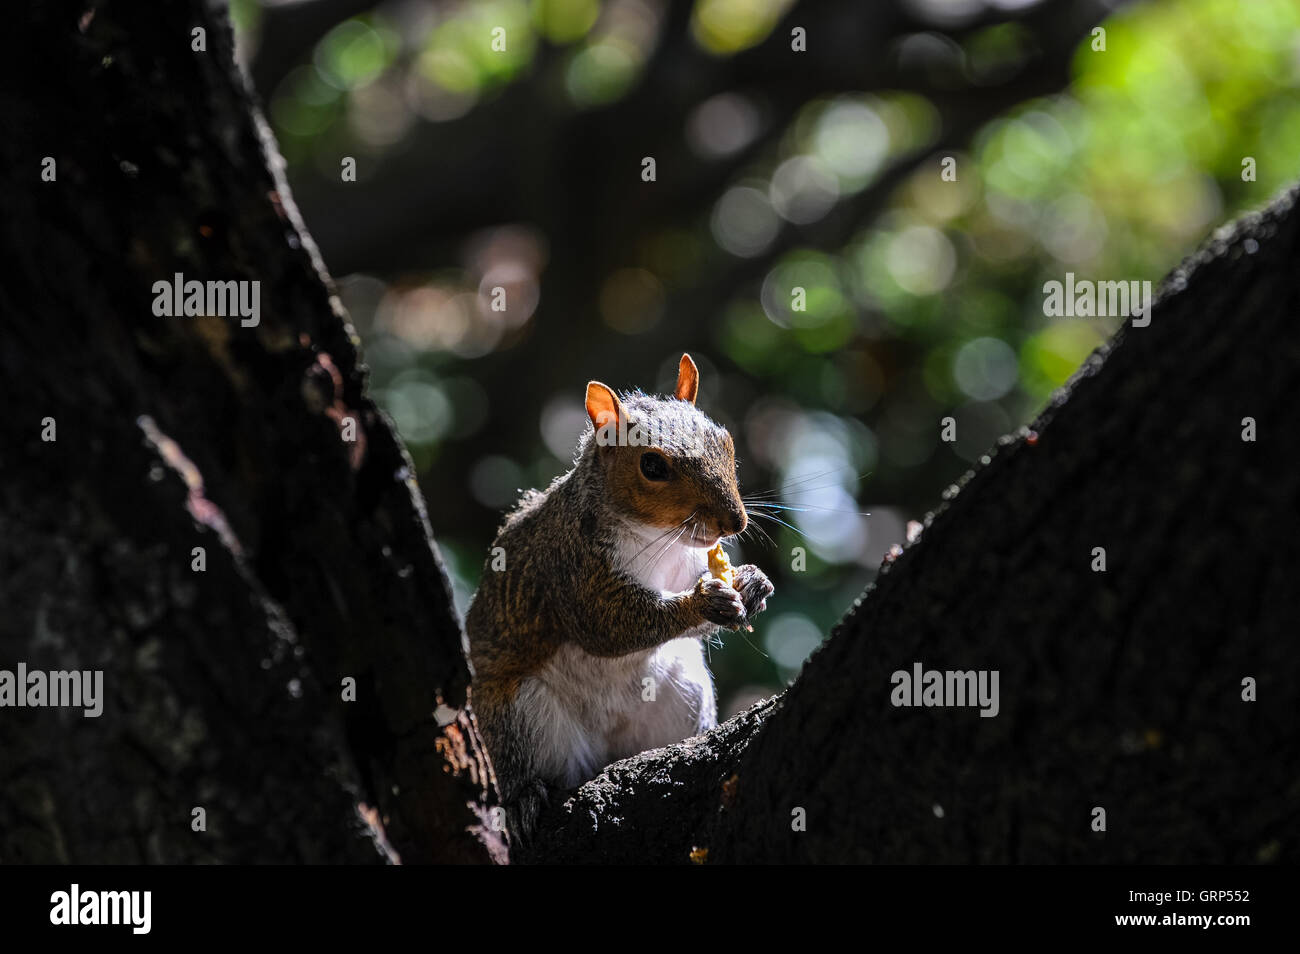 South Africa, Cape Town. Eastern gray squirrel in the Company's Garden. - Stock Image